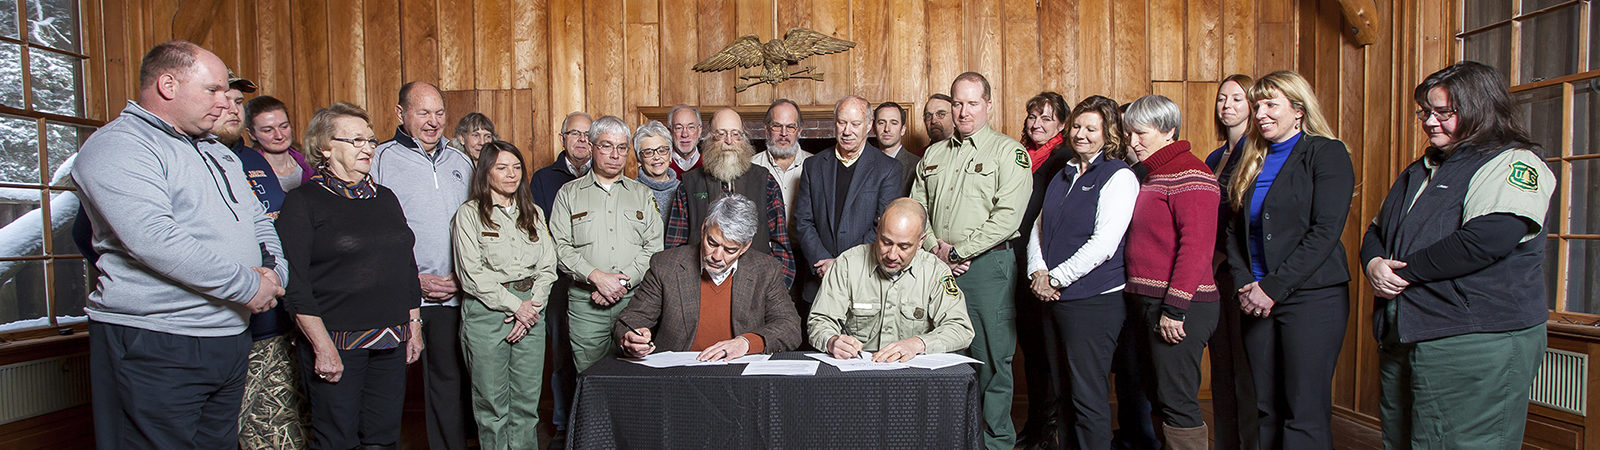 Group shot with Northland College President Michael Miller signing document alongside U.S. Forest Service